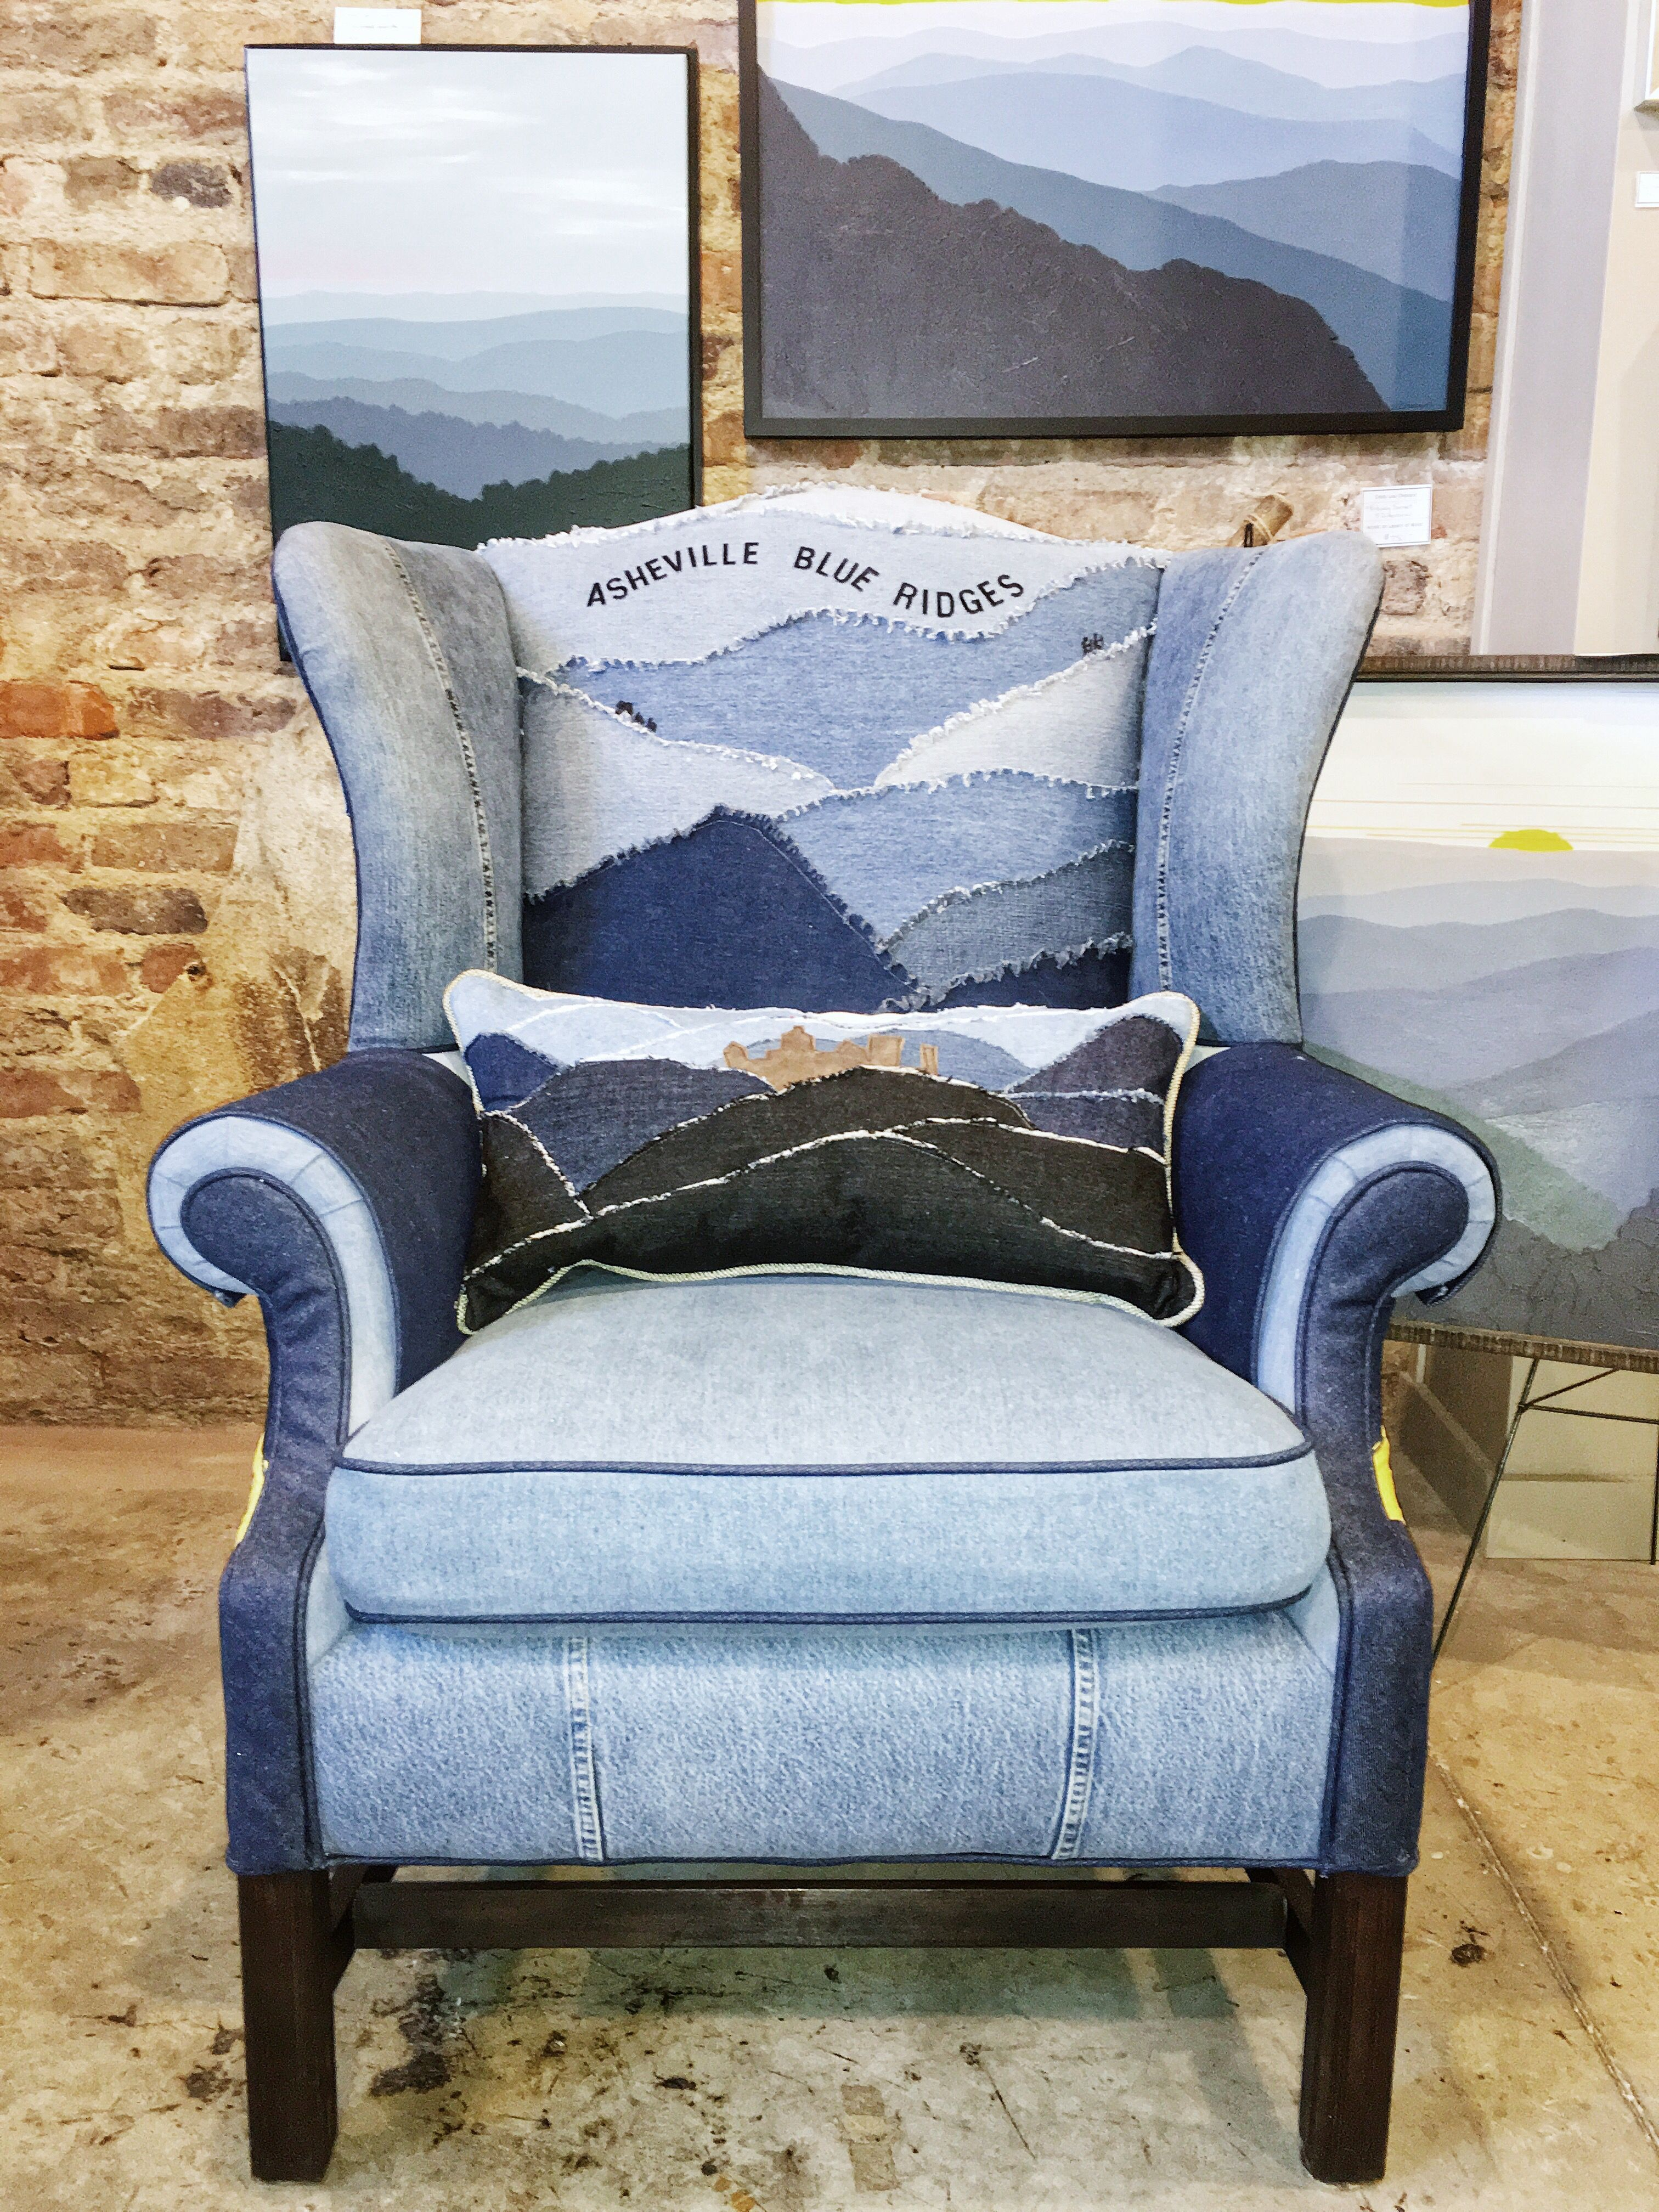 Merveilleux Made With Recycled Blue Jeans, Each Blue Ridge Chair Is Created With Layers  Of Shades